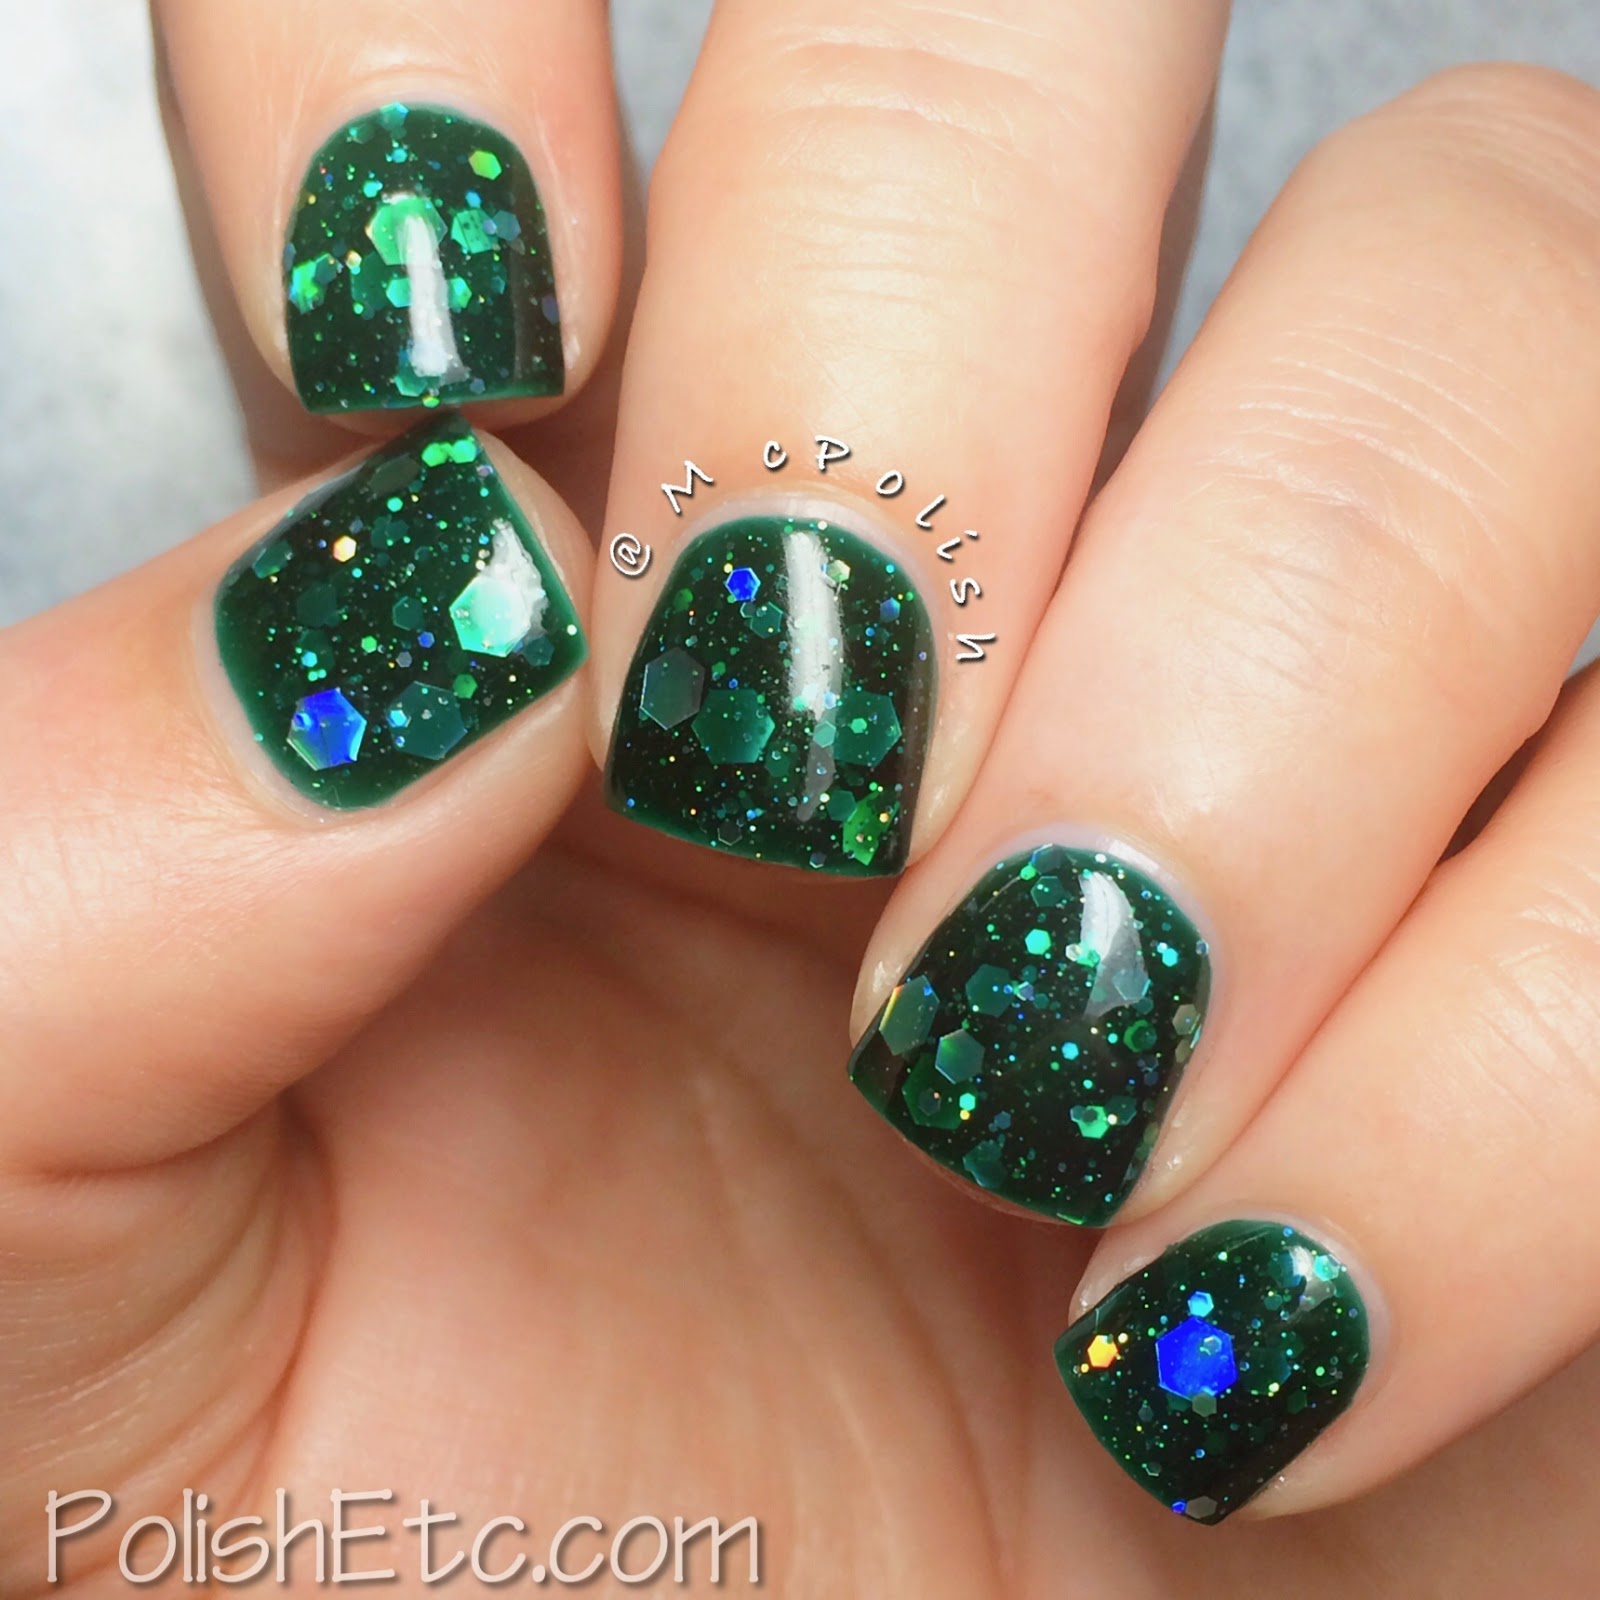 KBShimmer - Green Hex and Glam